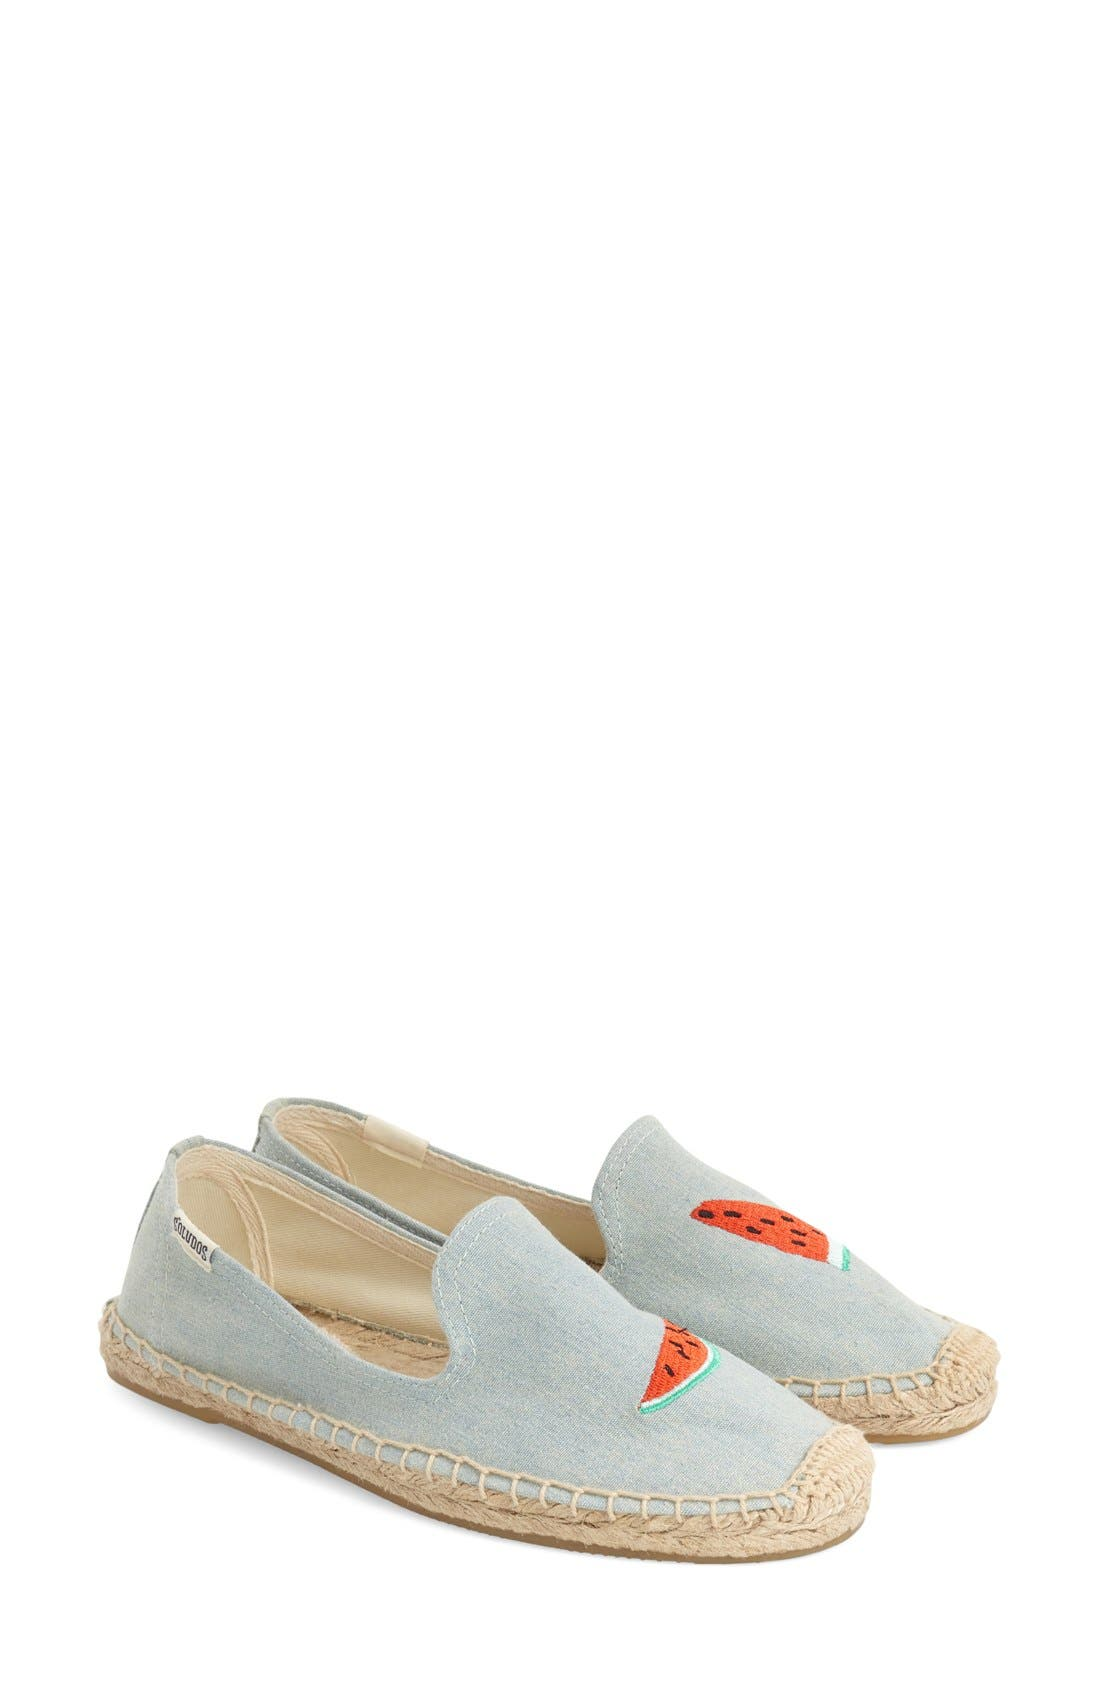 SOLUDOS 'Watermelon' Embroidered Flat, Main, color, 420